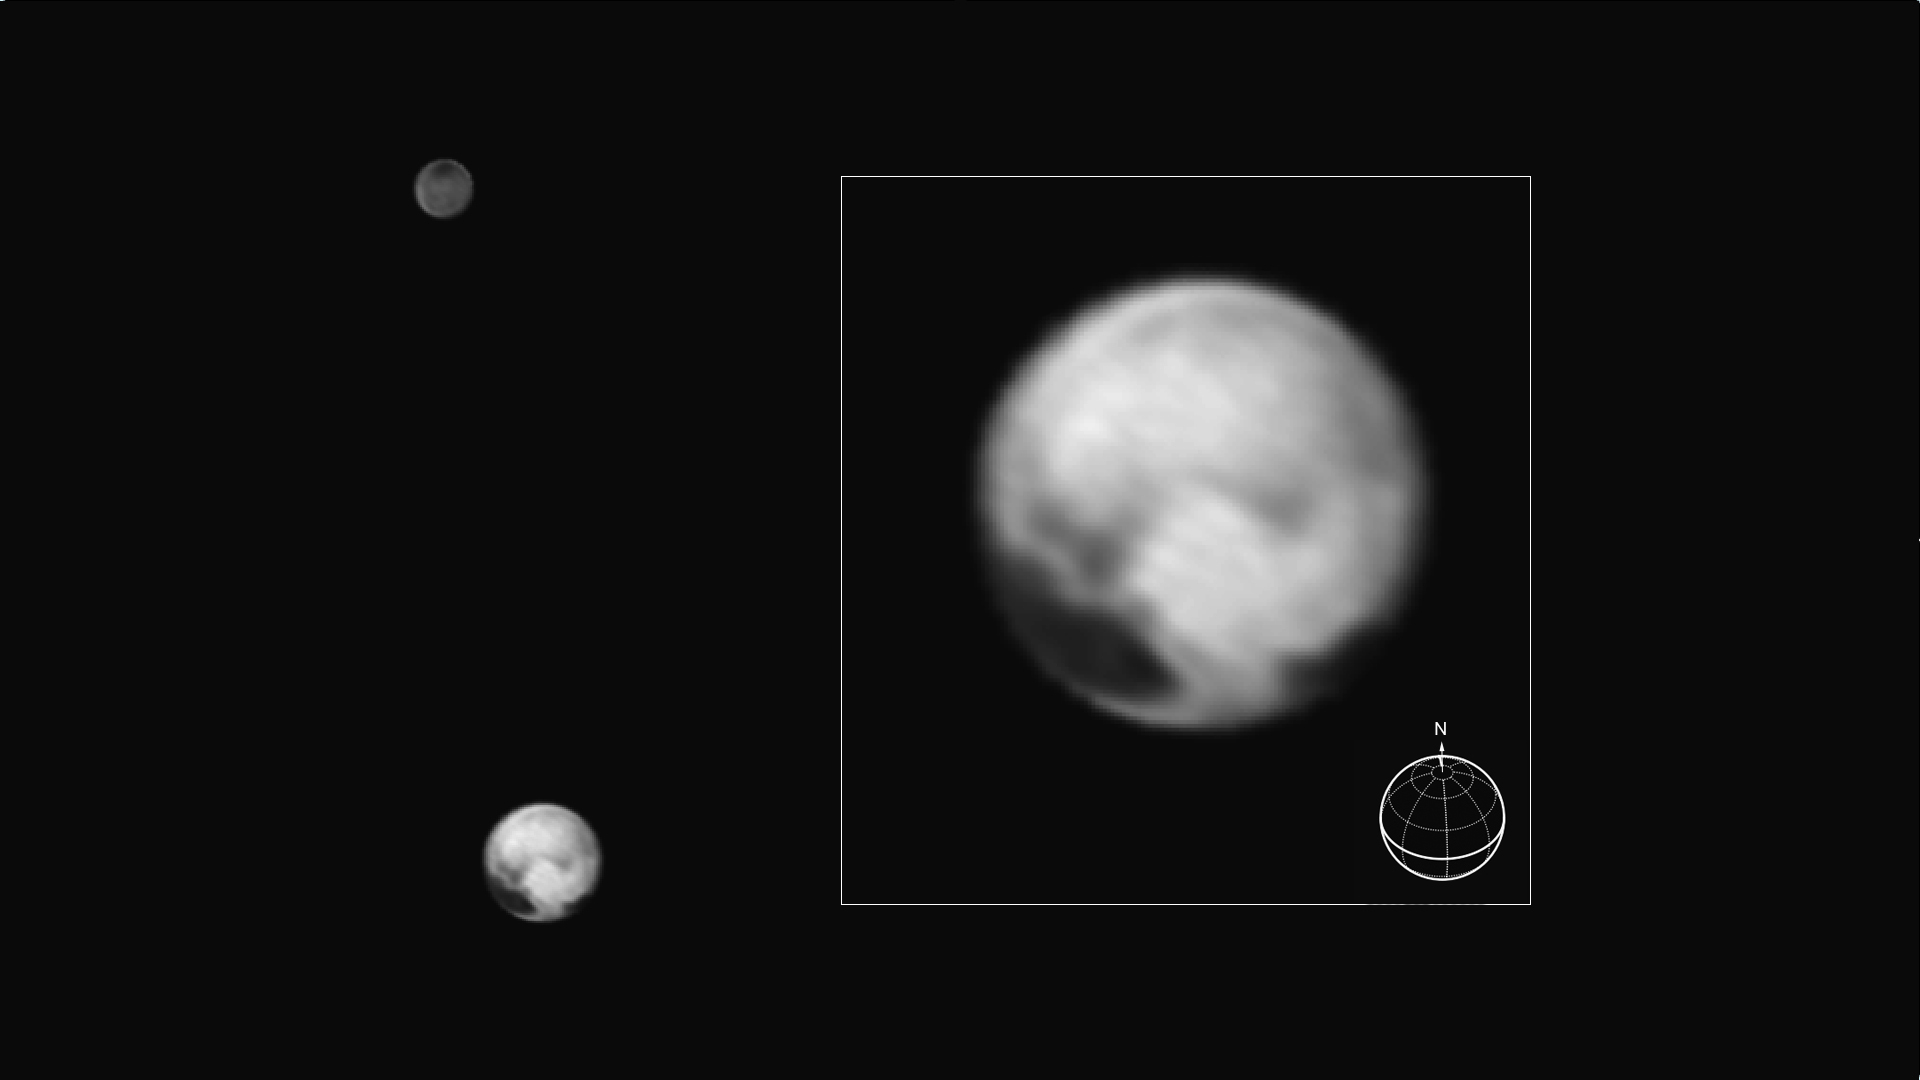 Surface Features Emerging on Pluto